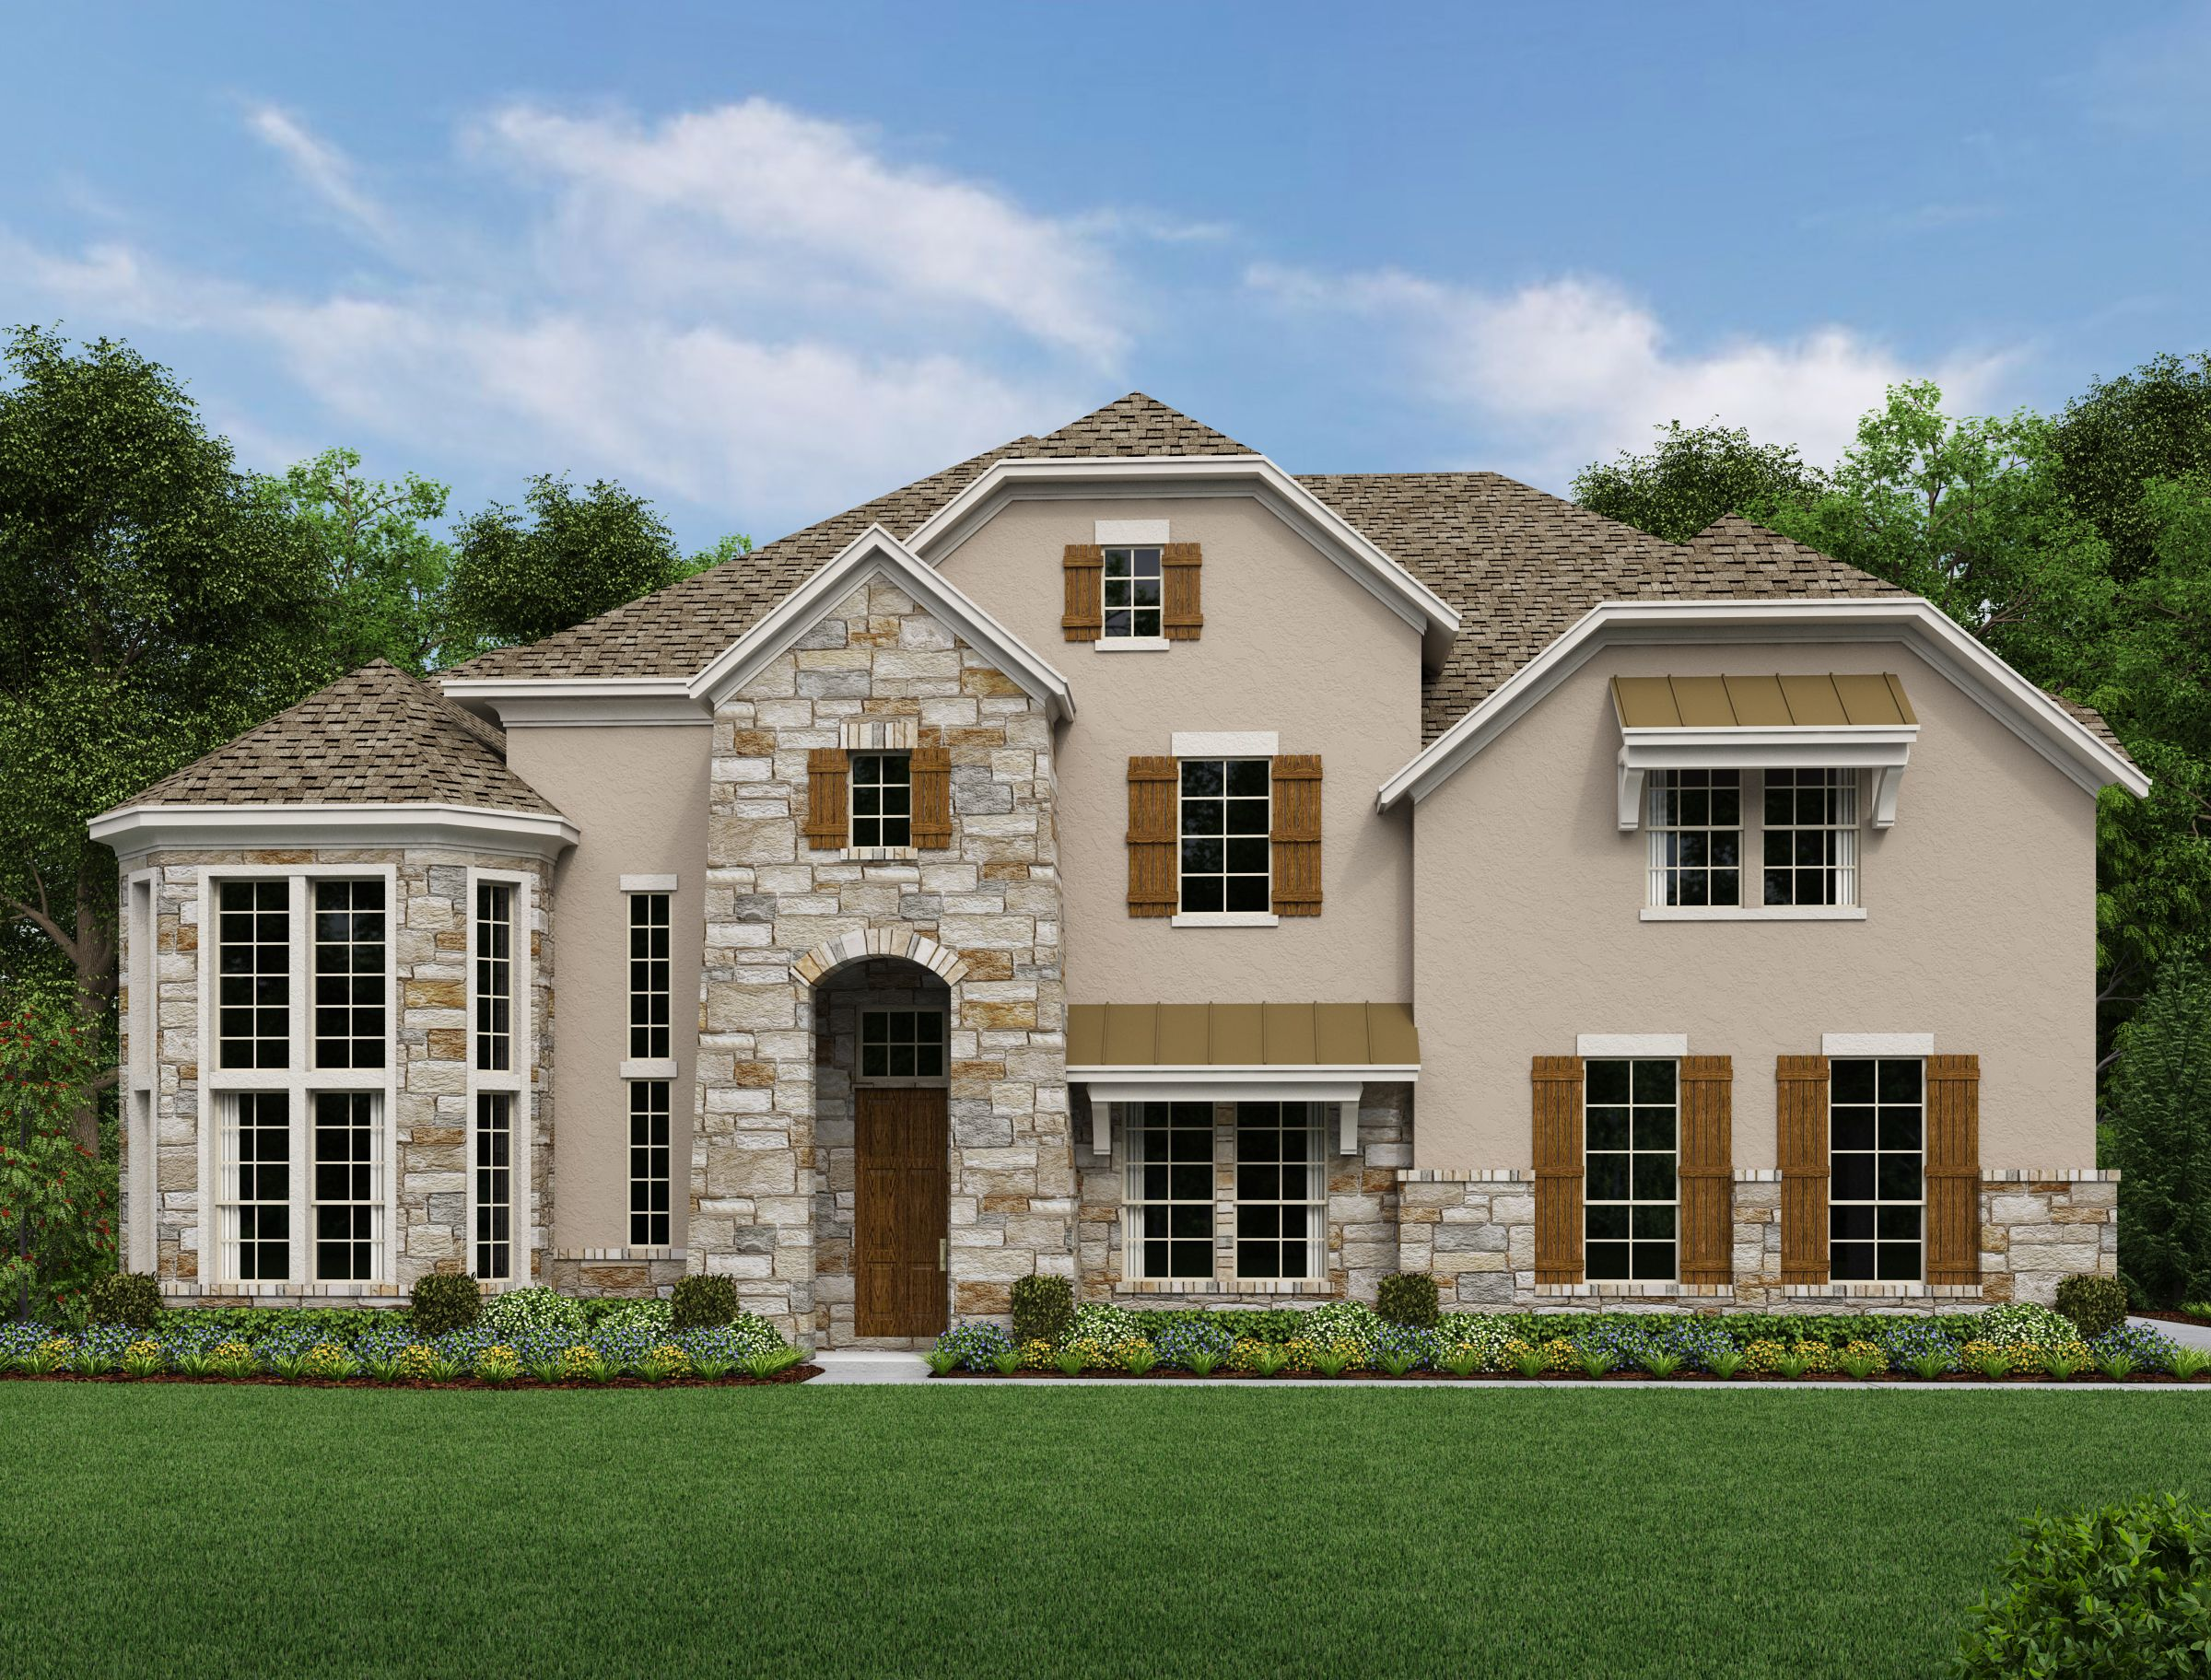 Single Family for Sale at Lakes Edge - Bellagio 2500 Ashley Worth Blvd Bee Cave, Texas 78738 United States